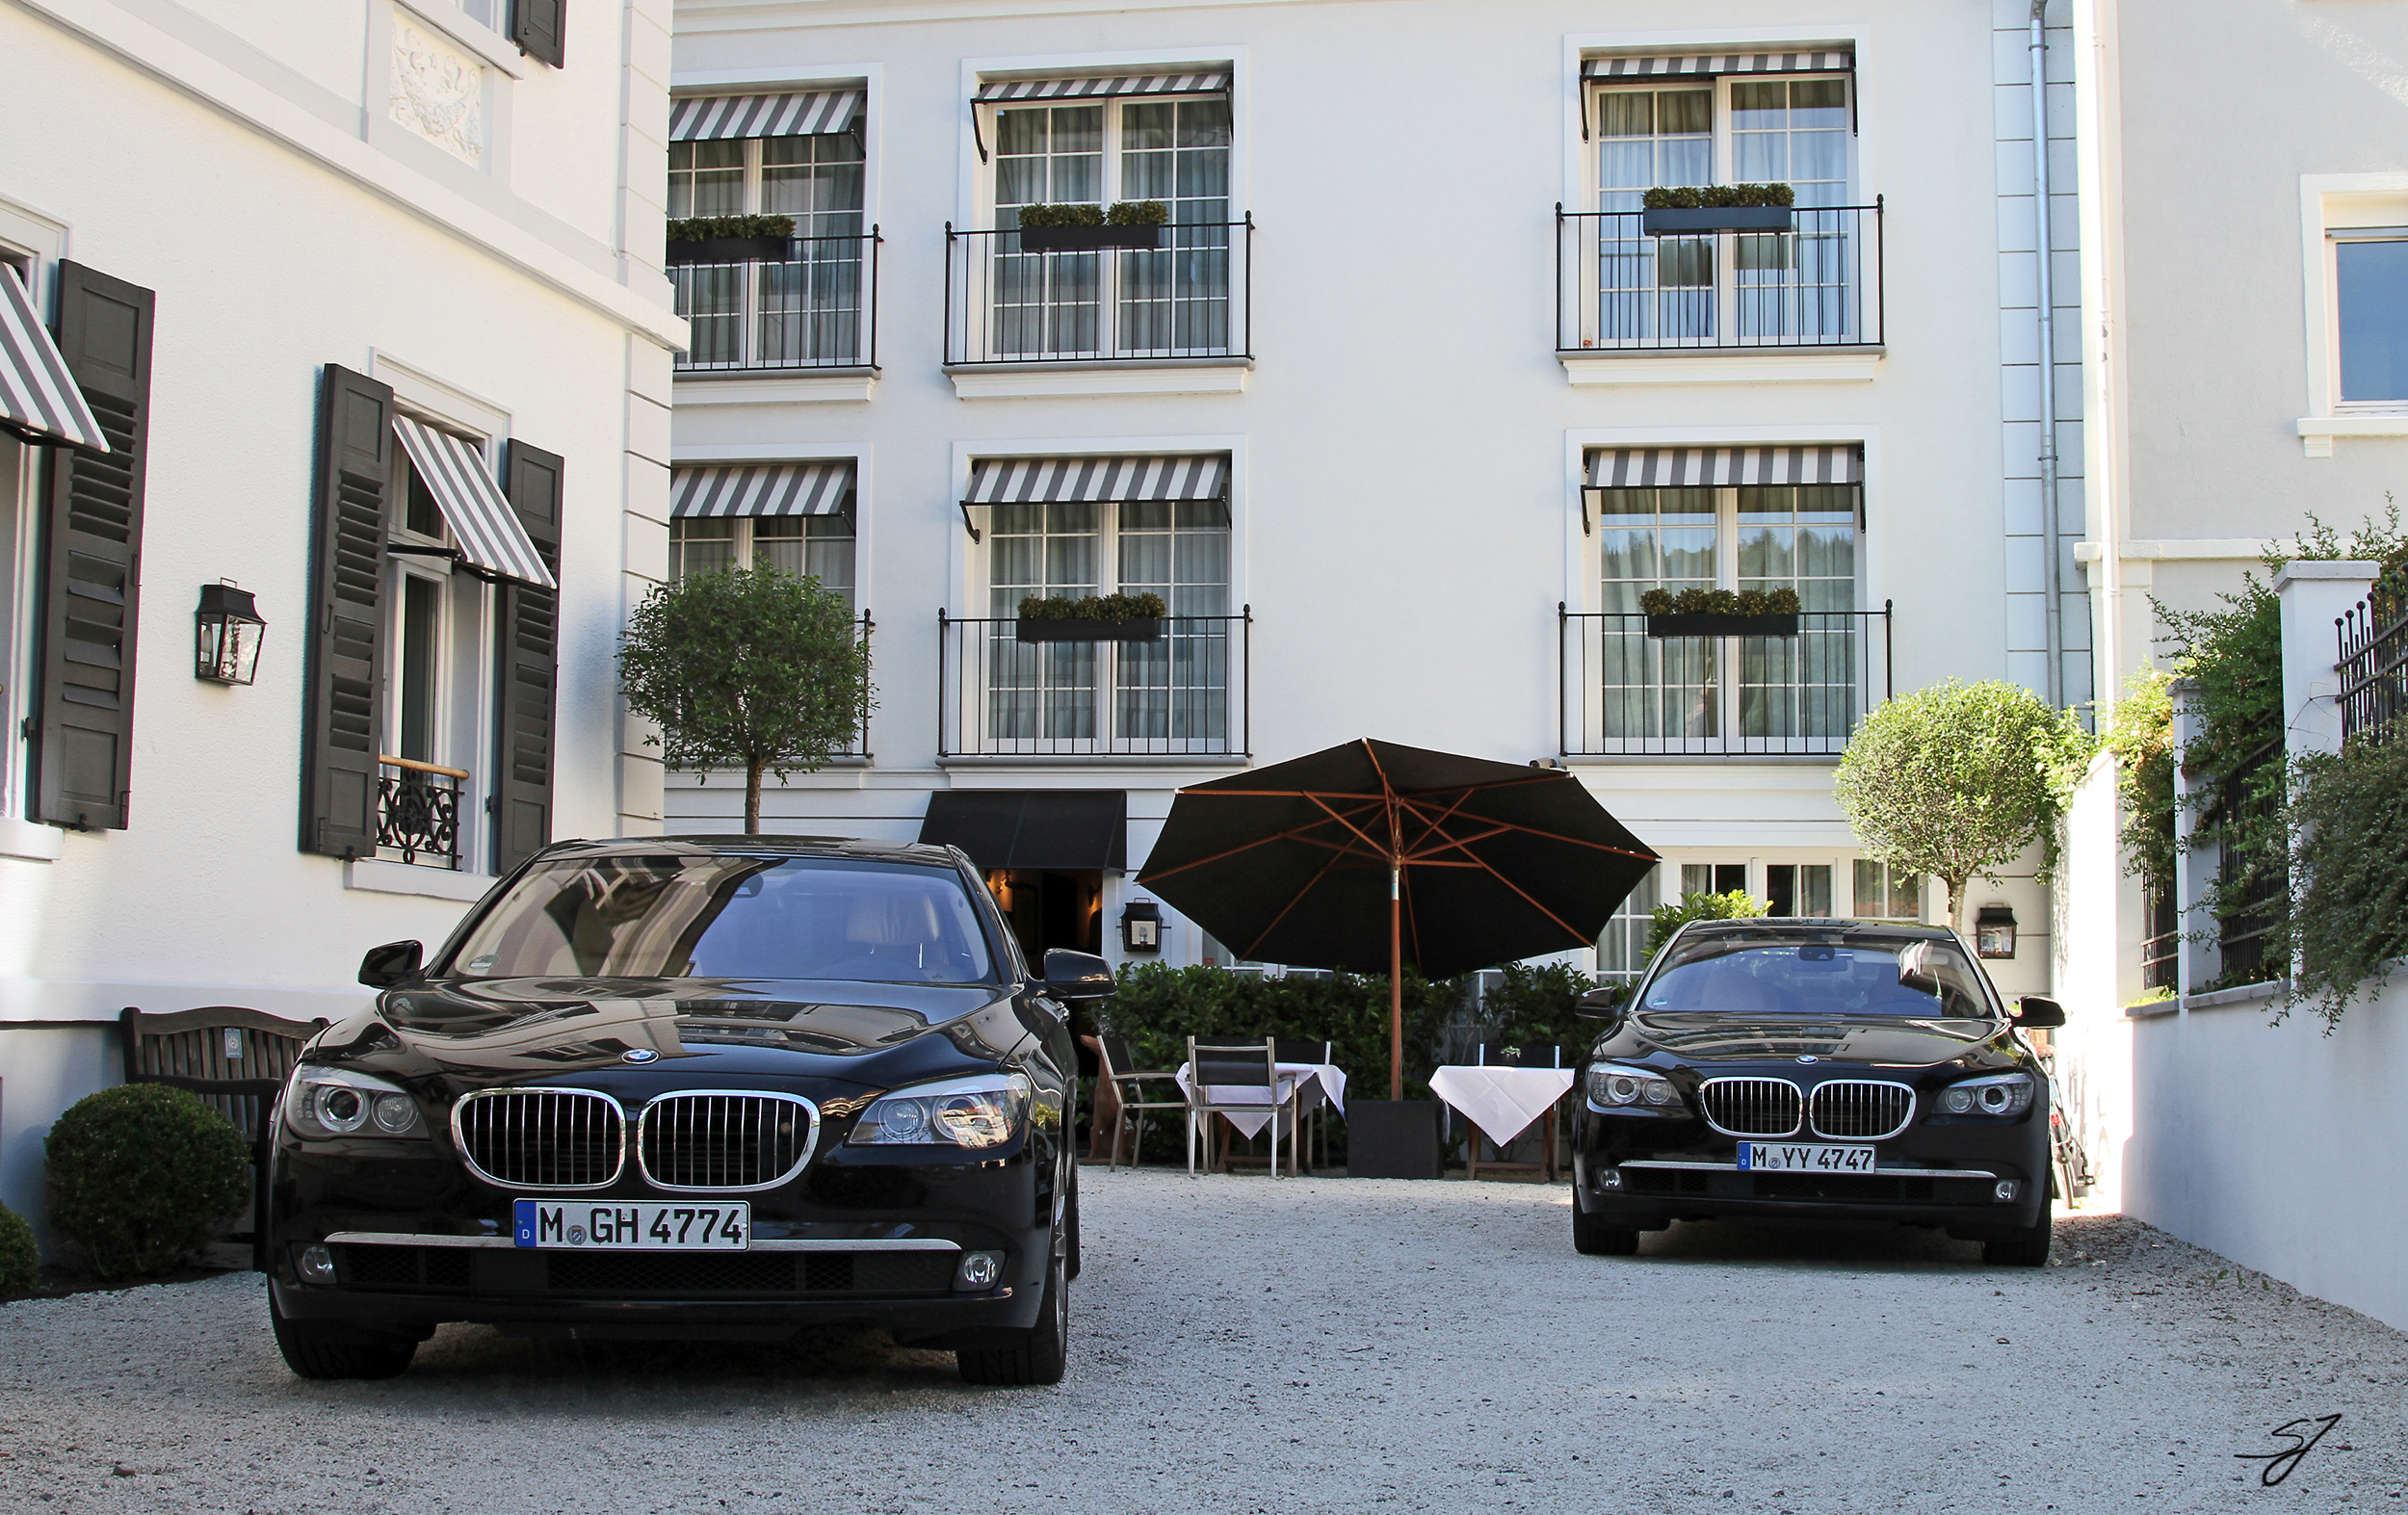 BMW 750iL x2 | Flickr - Photo Sharing!